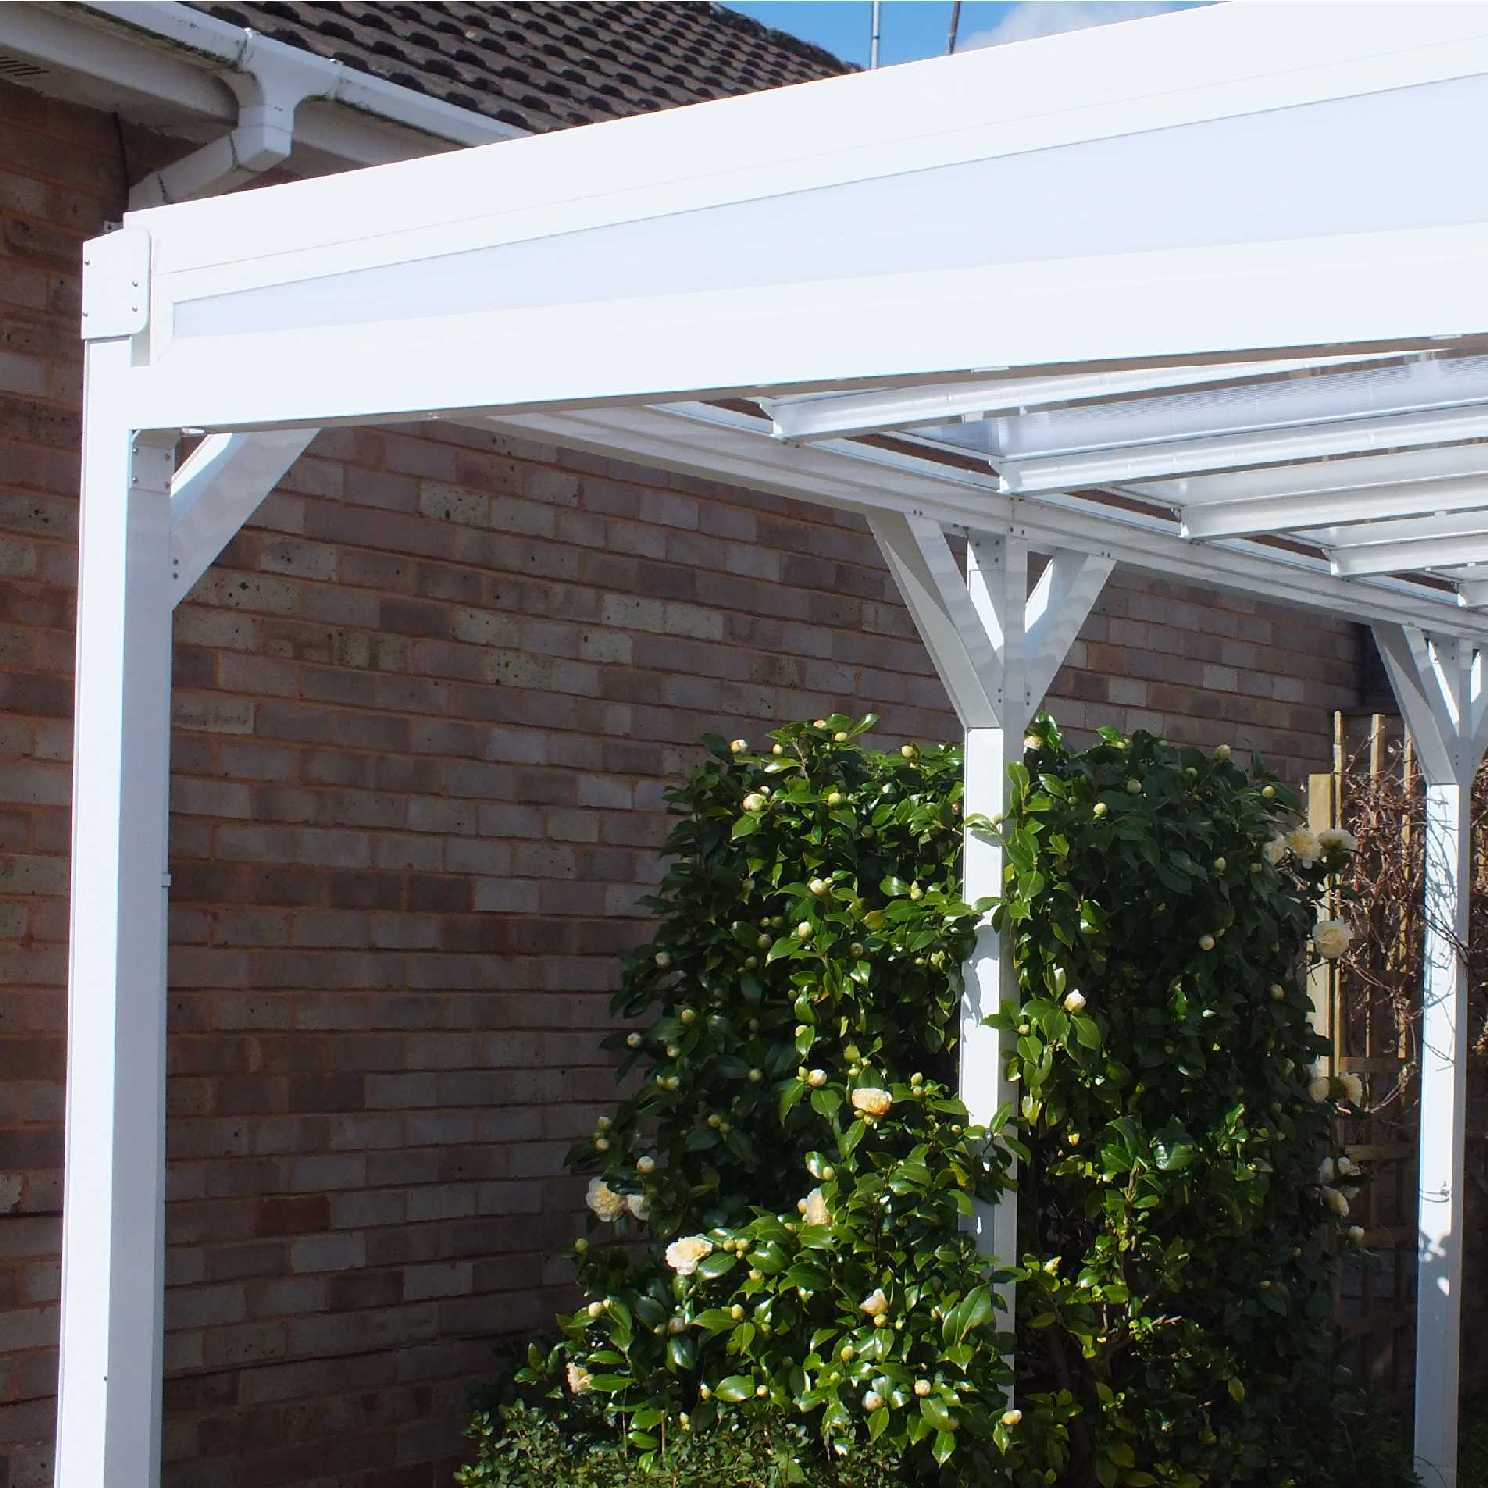 Omega Smart Lean-To Canopy with 16mm Polycarbonate Glazing - 12.0m (W) x 2.5m (P), (5) Supporting Posts from Omega Build